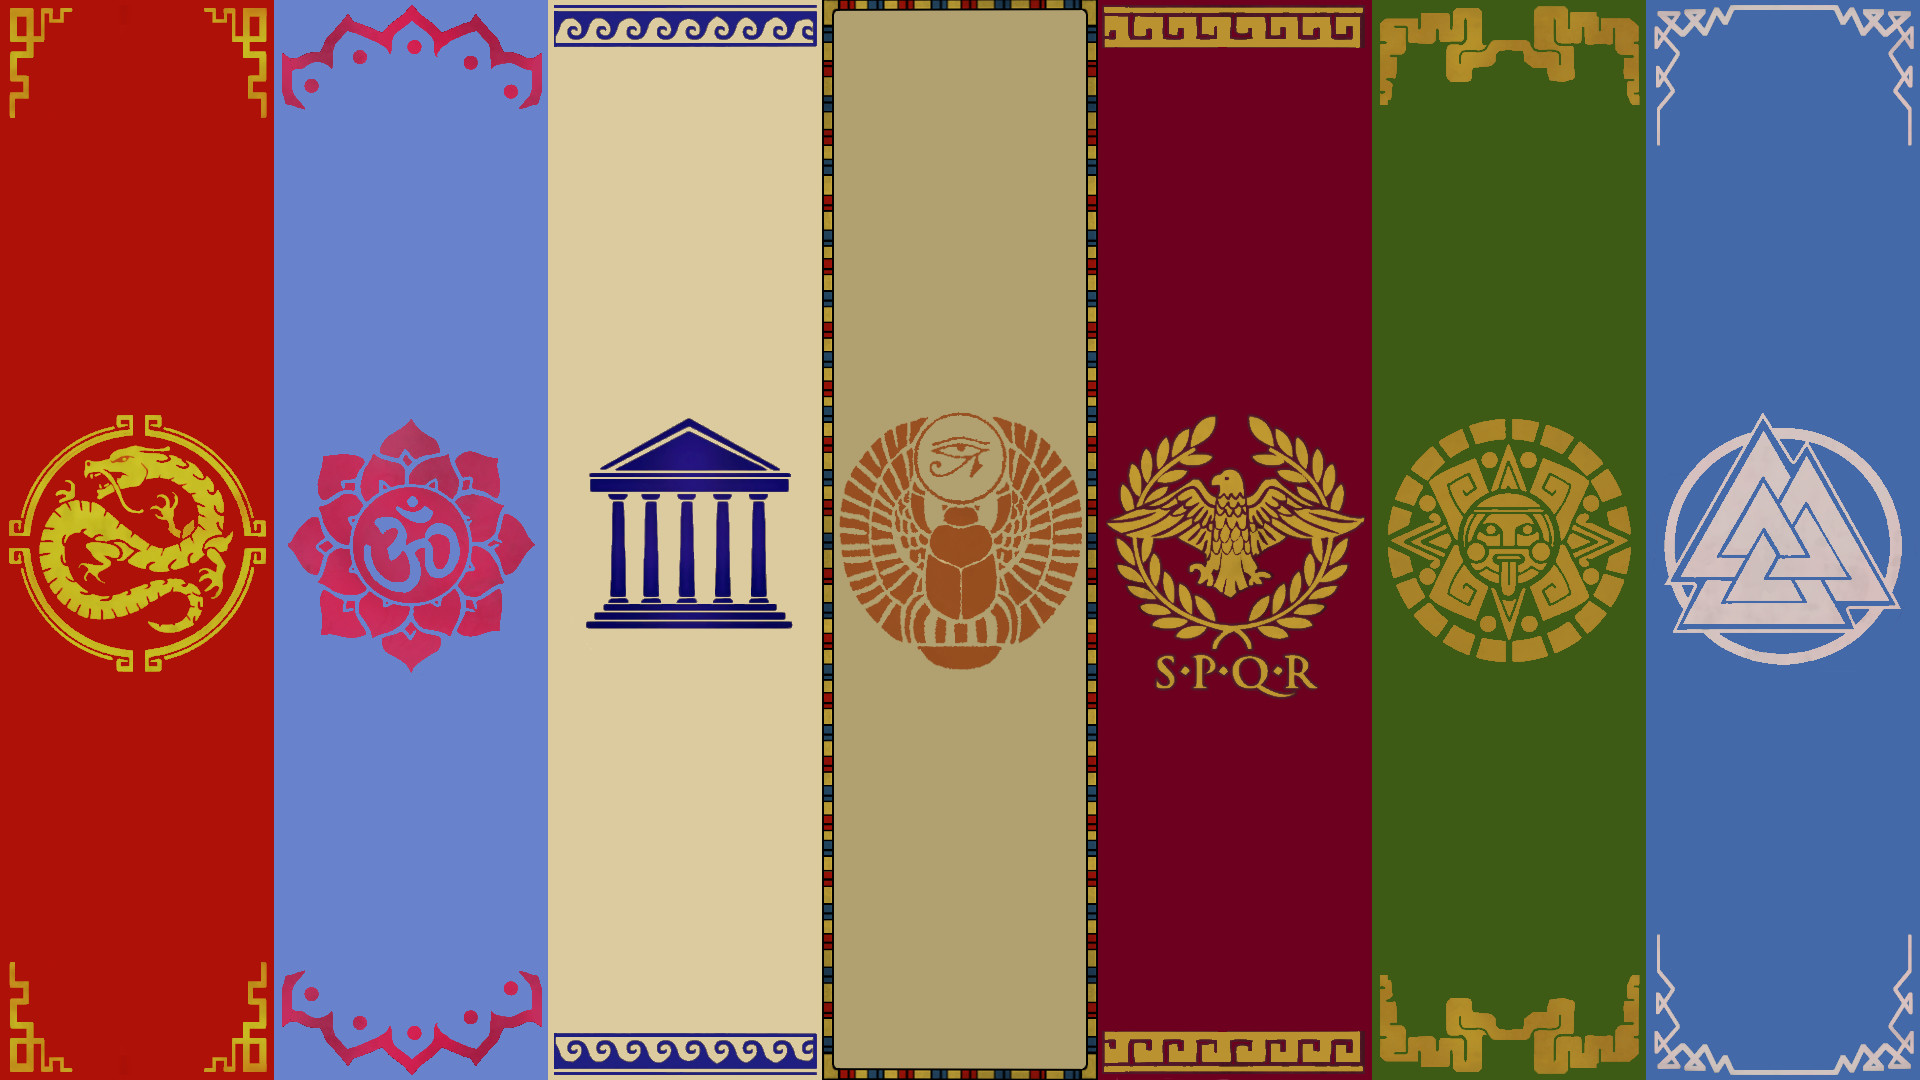 1920x1080 ... Smite Pantheon Banners ~Wallpaper~ by Silverfoxxe